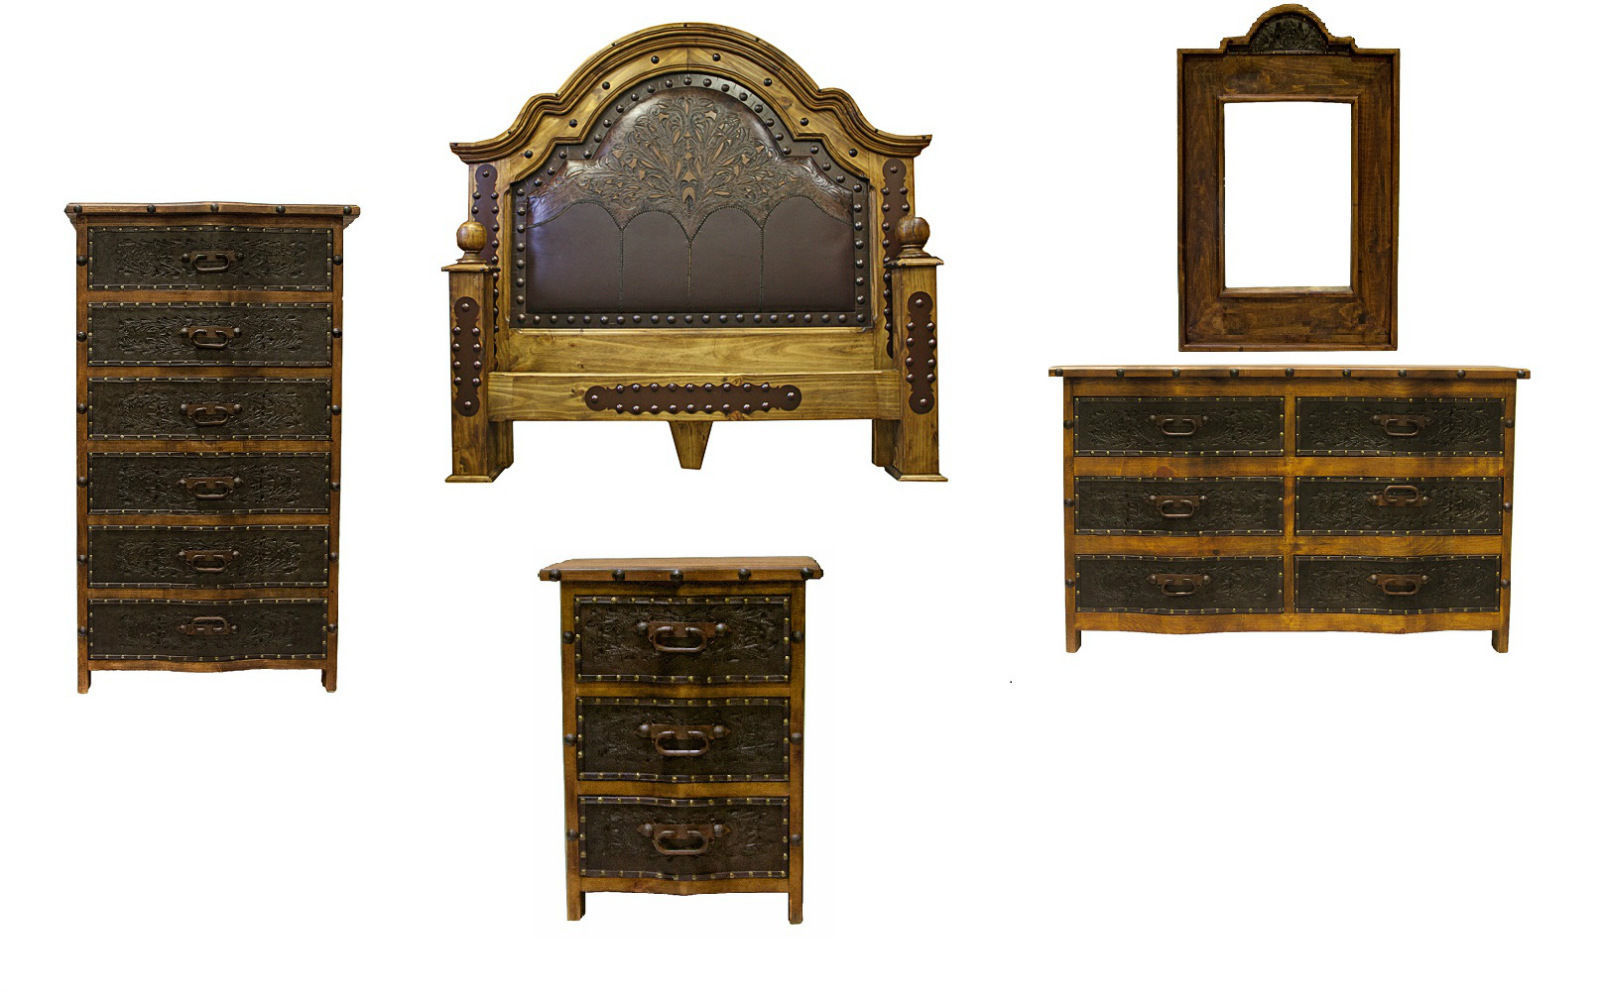 Grand tooled leather bedroom set with iron accents real for Iron accents promo code